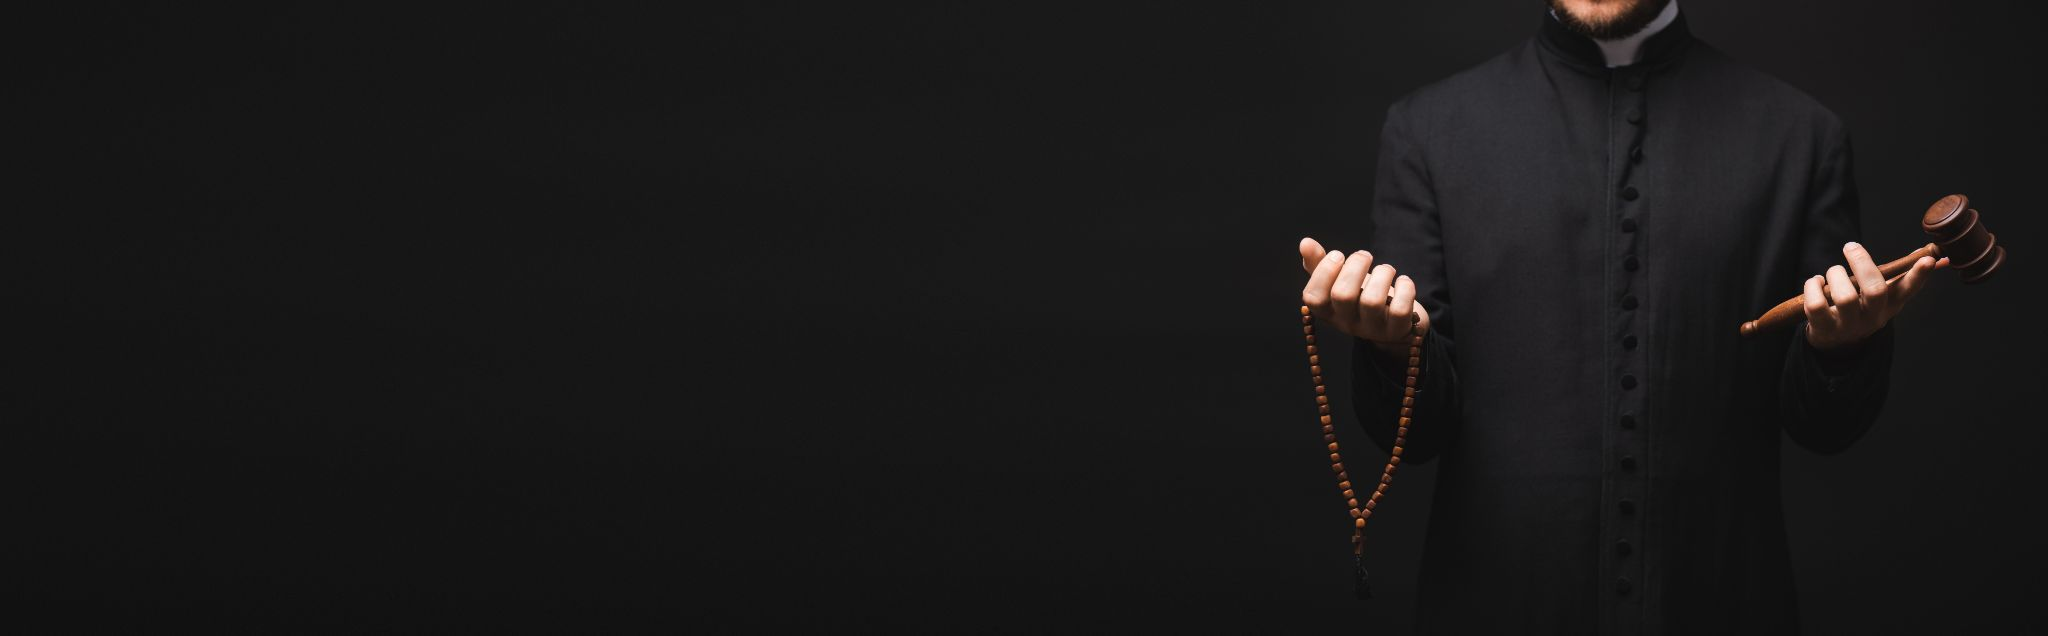 priest holding wooden gavel and rosary beads in hands